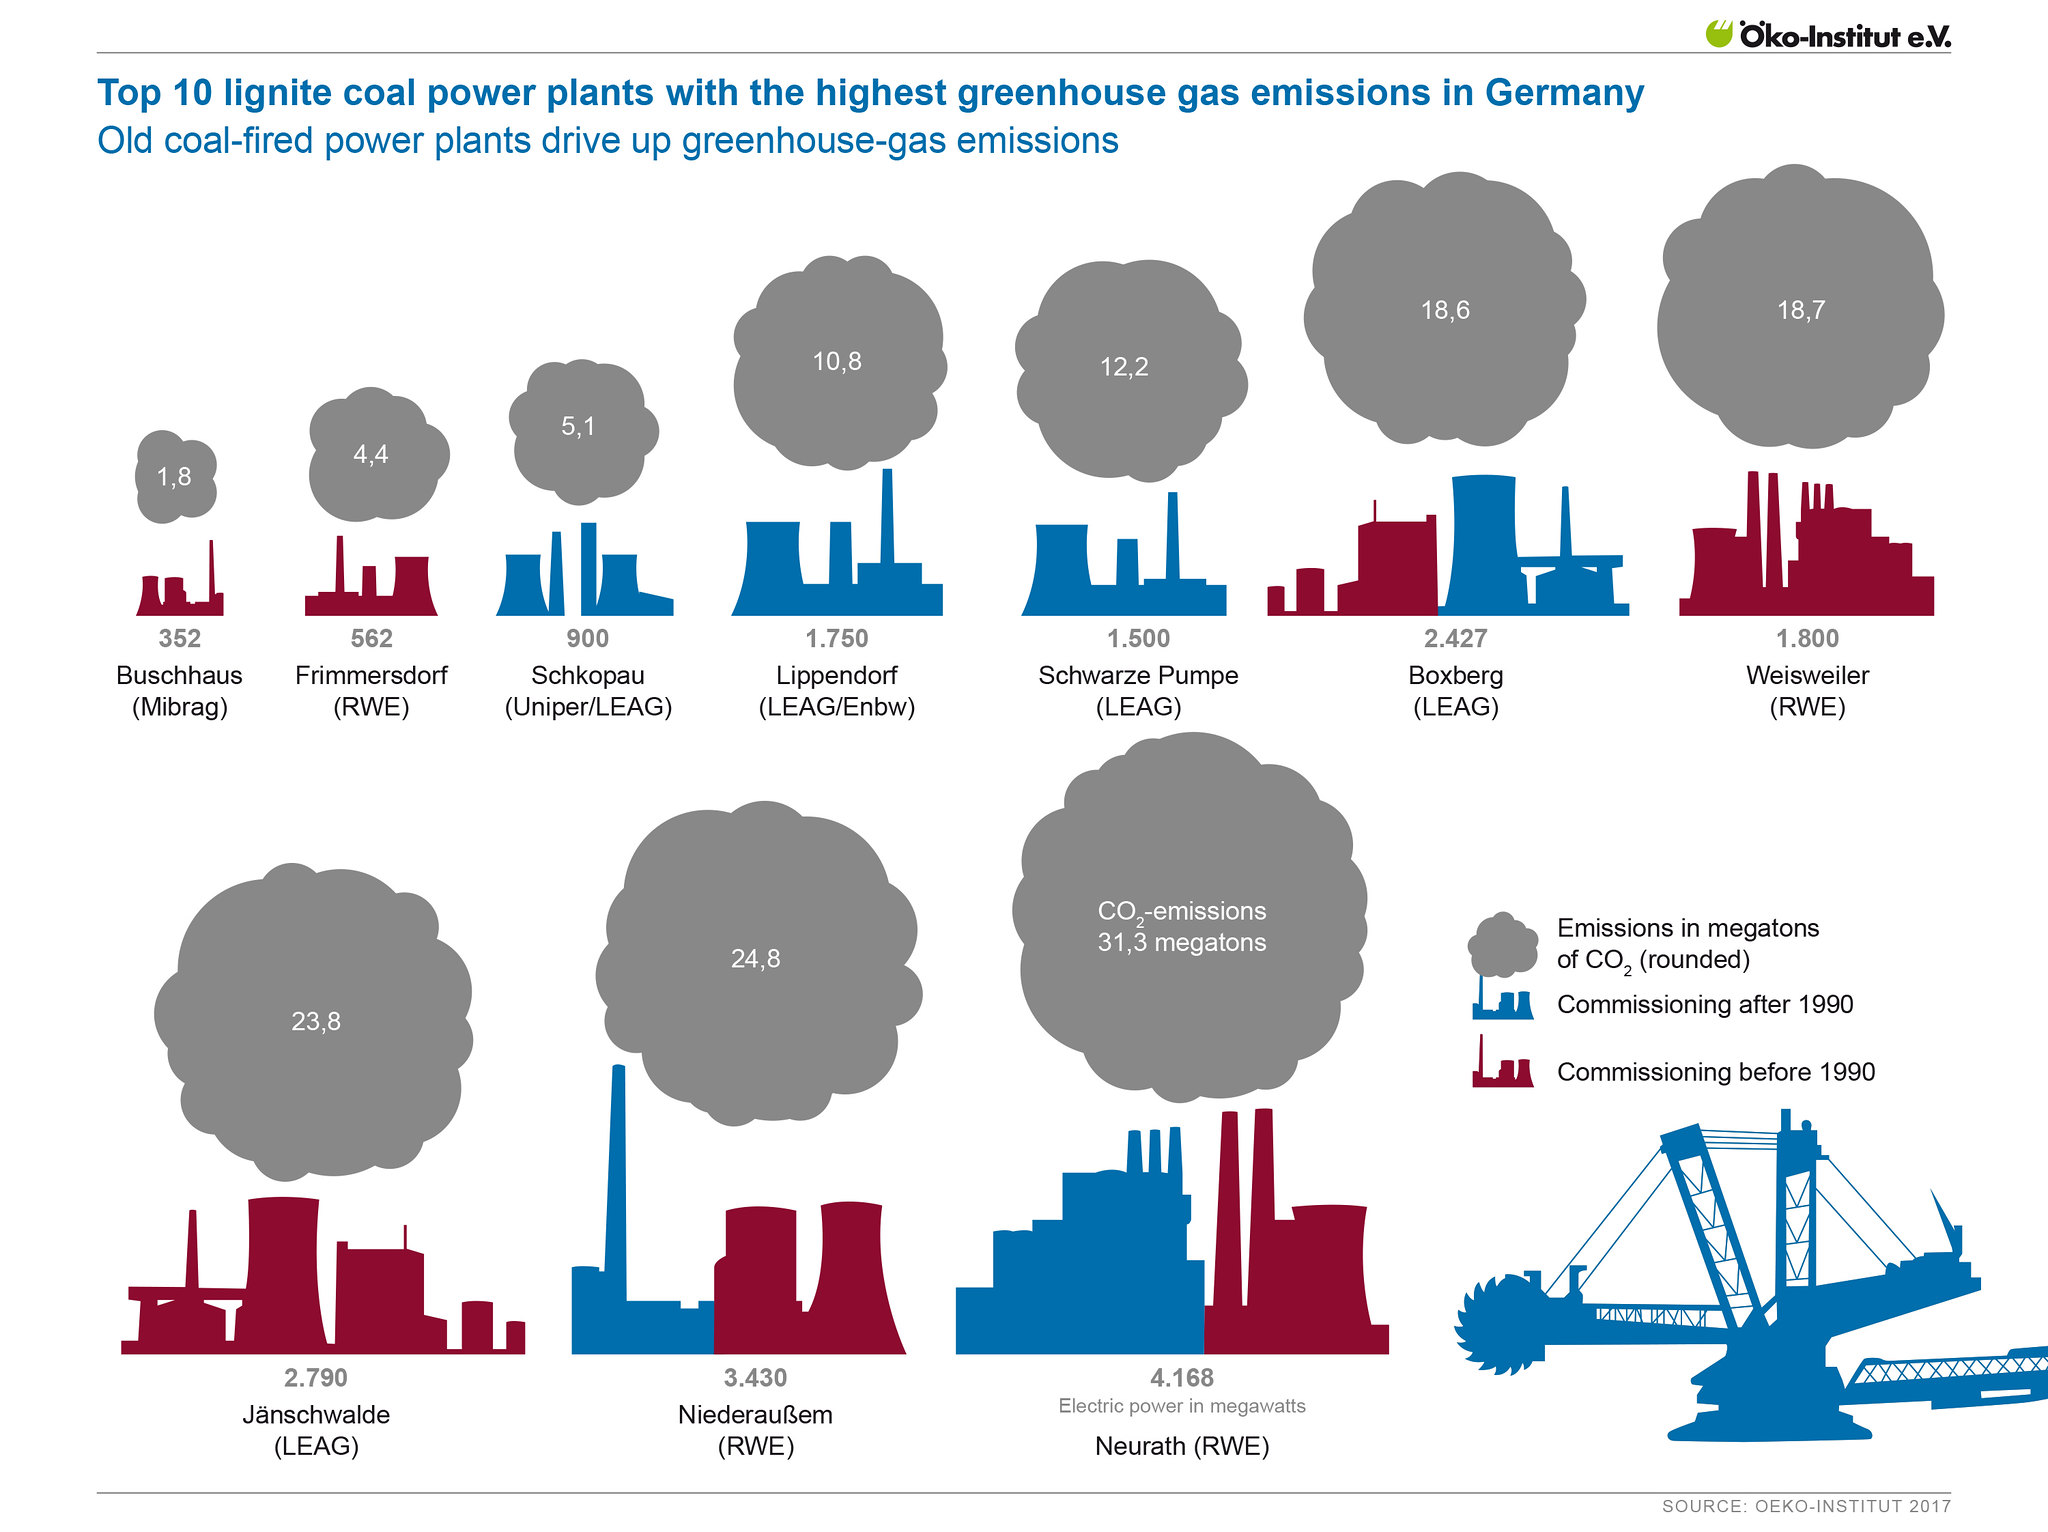 Top 10 lignite coal power plants with the highest greenhouse gas emissions in Germany